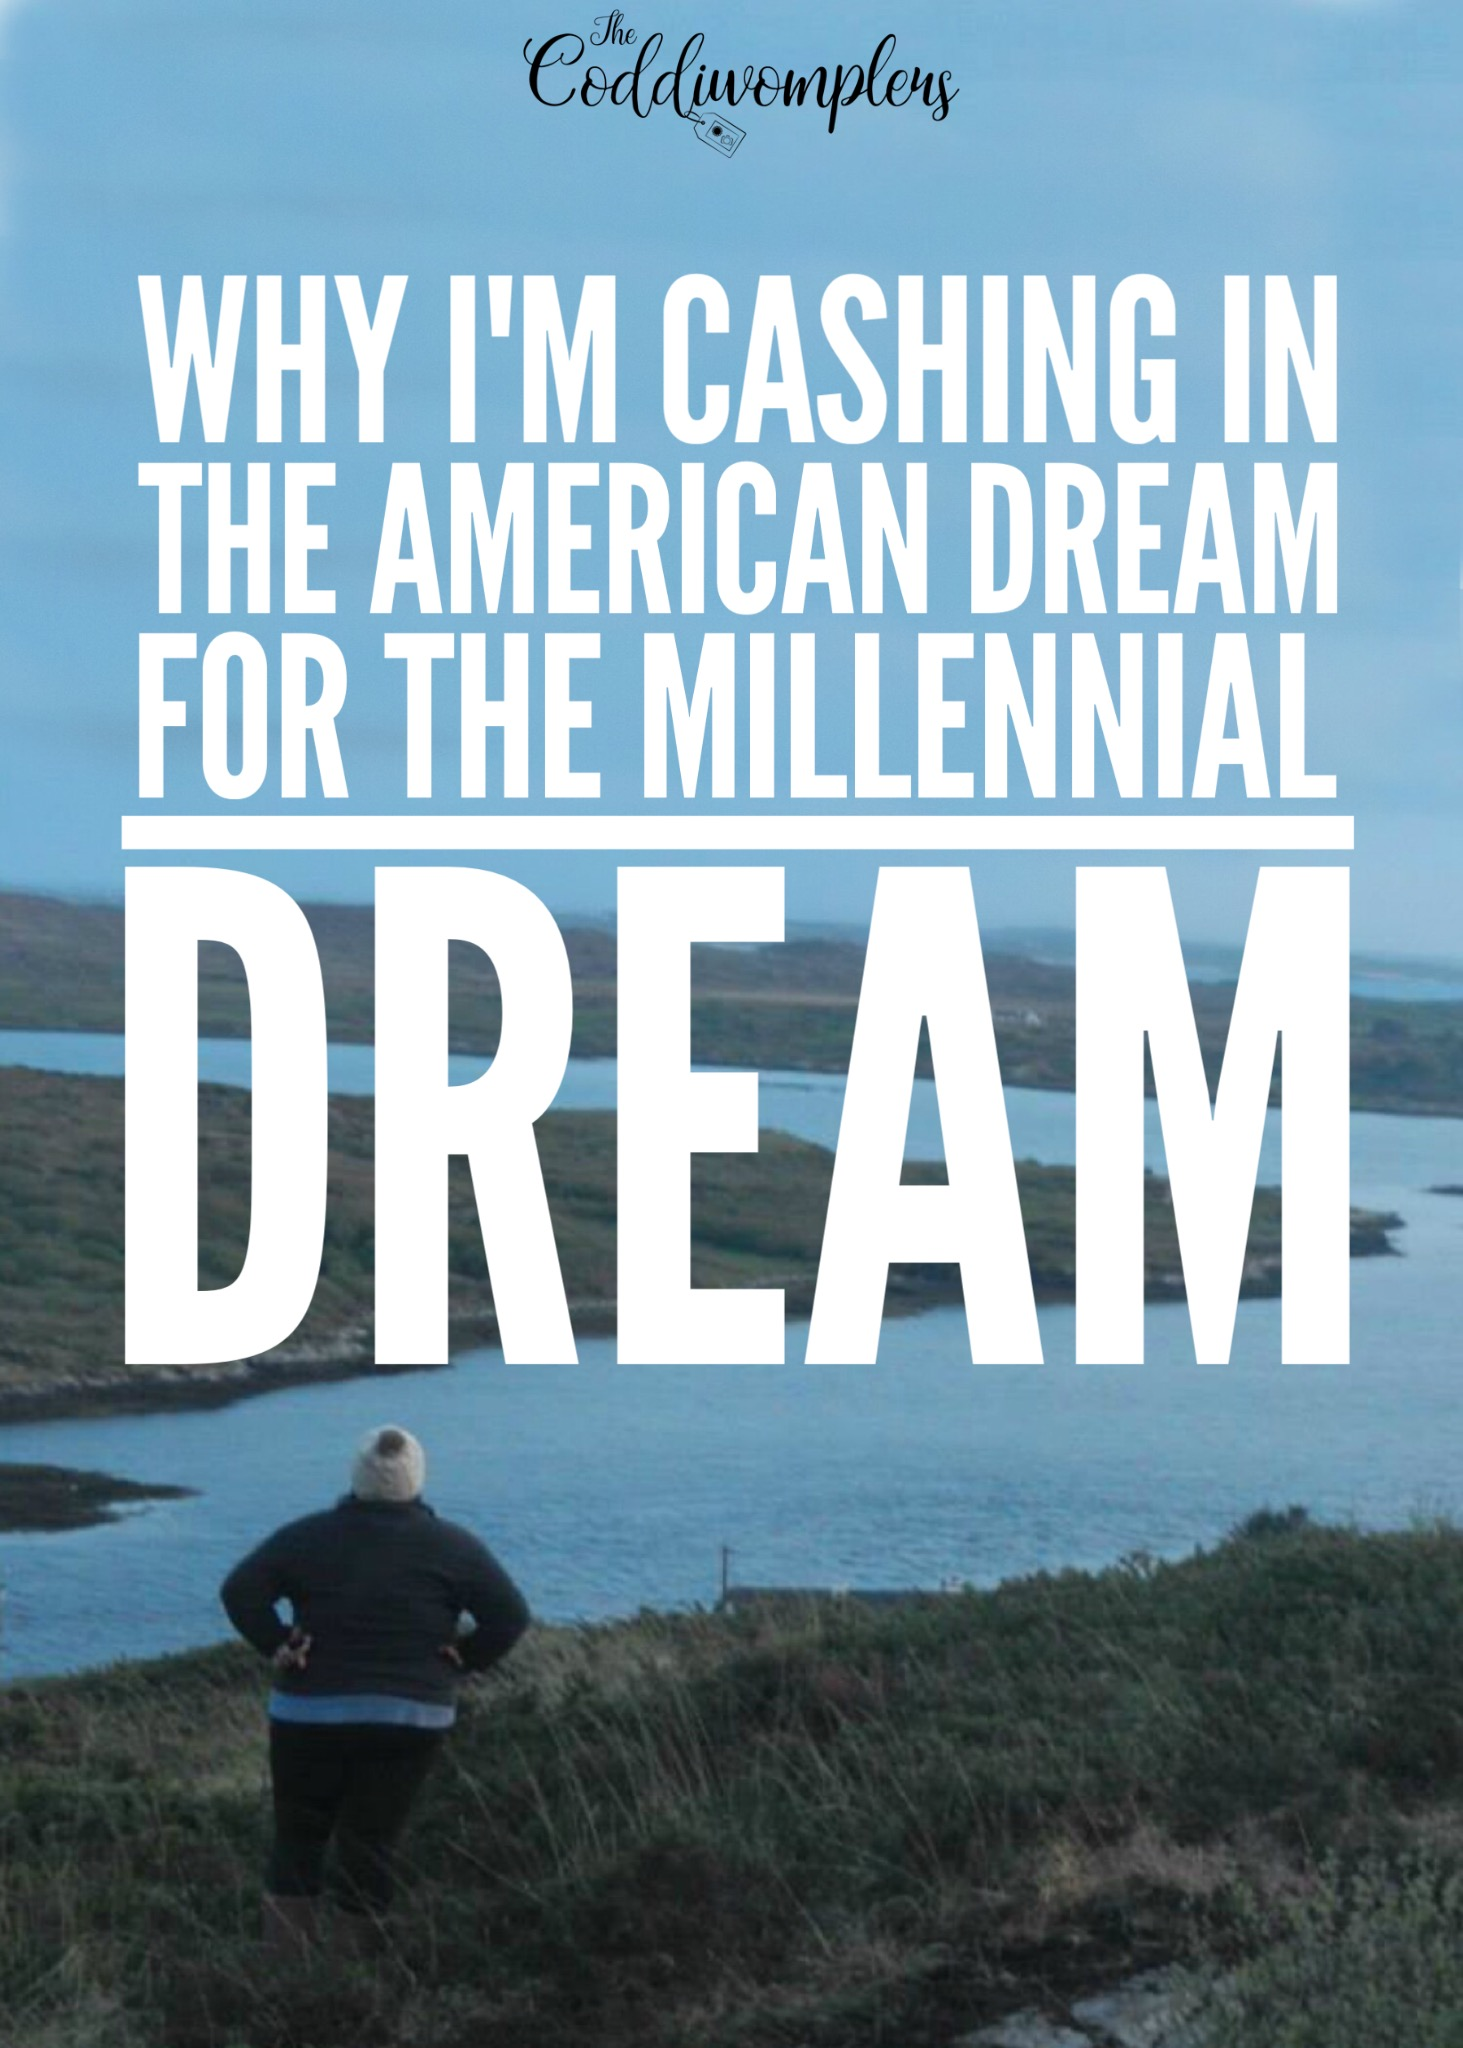 Why I'm Cashing in the American Dream for the Millennial Dream